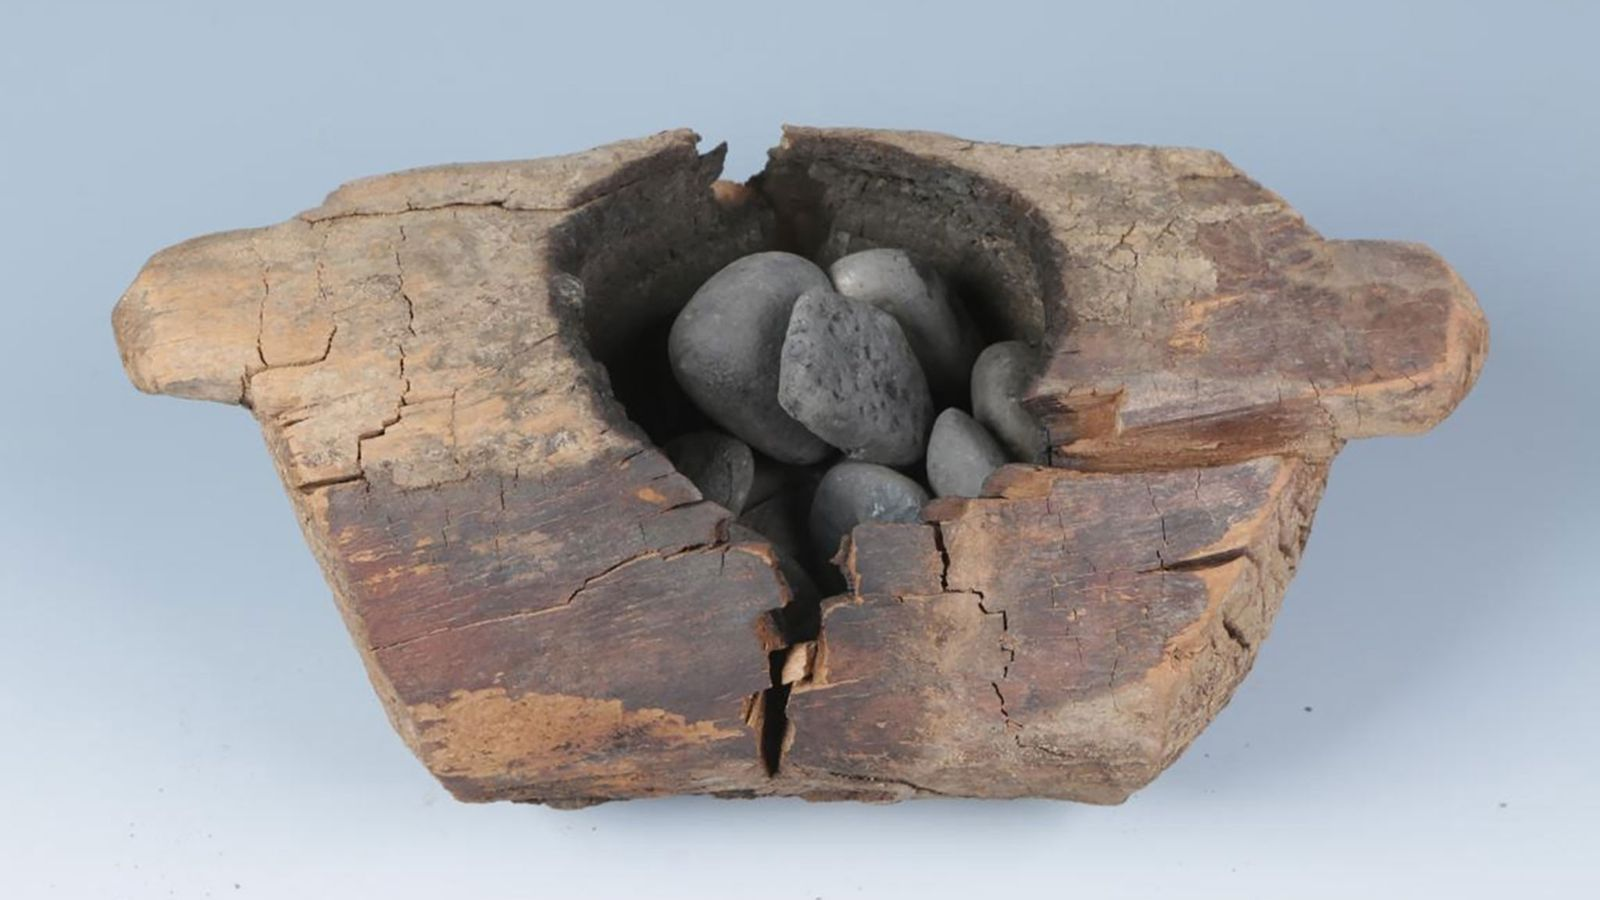 2,500-year-old burials at Jirzankal Cemetery in western China feature wooden braziers that burned cannabis plants containing ...